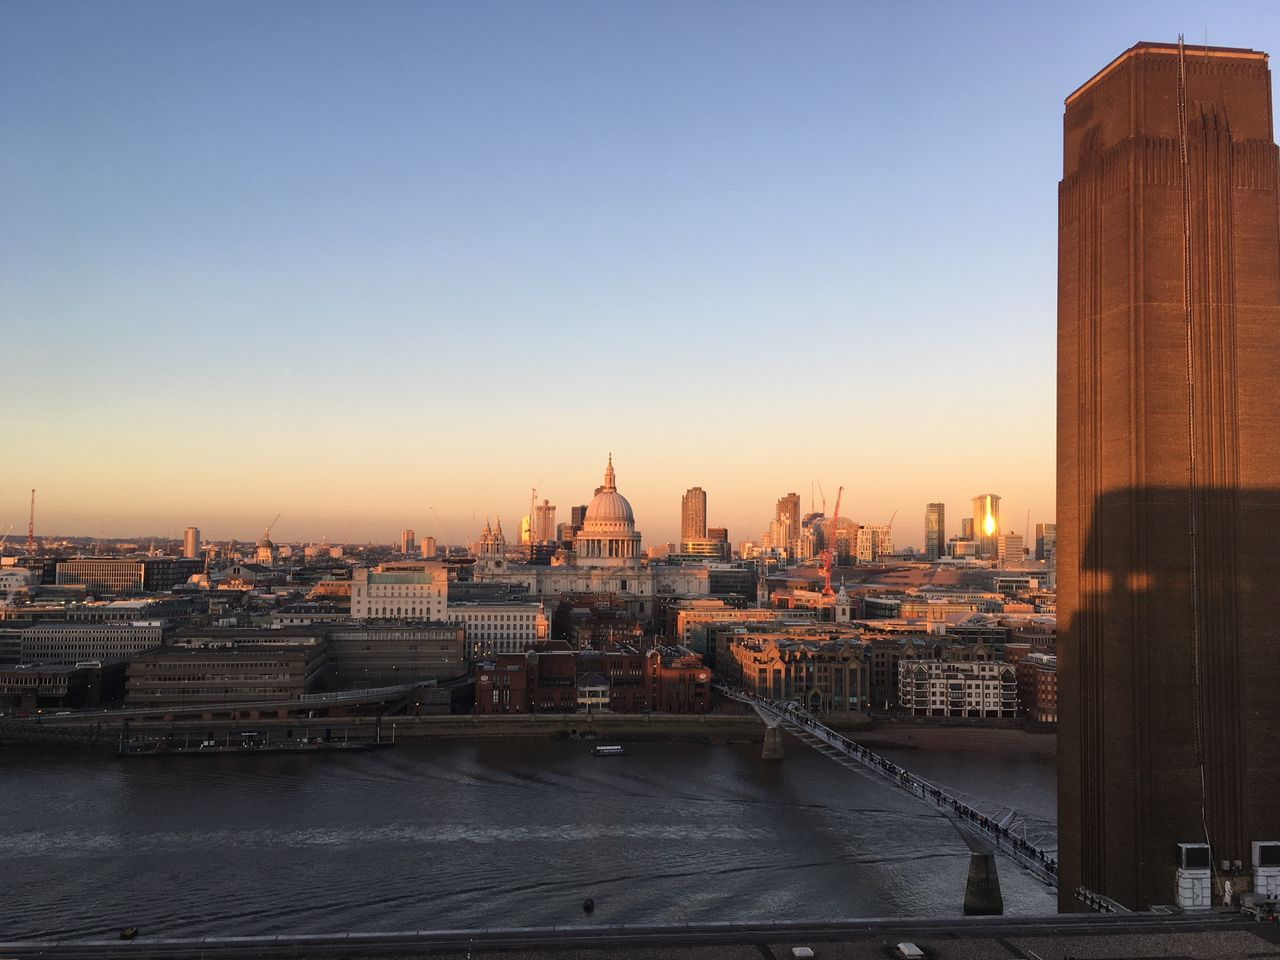 architecture, built structure, building exterior, cityscape, city, sunset, travel destinations, river, religion, outdoors, skyscraper, place of worship, spirituality, urban skyline, travel, clear sky, sky, no people, water, day